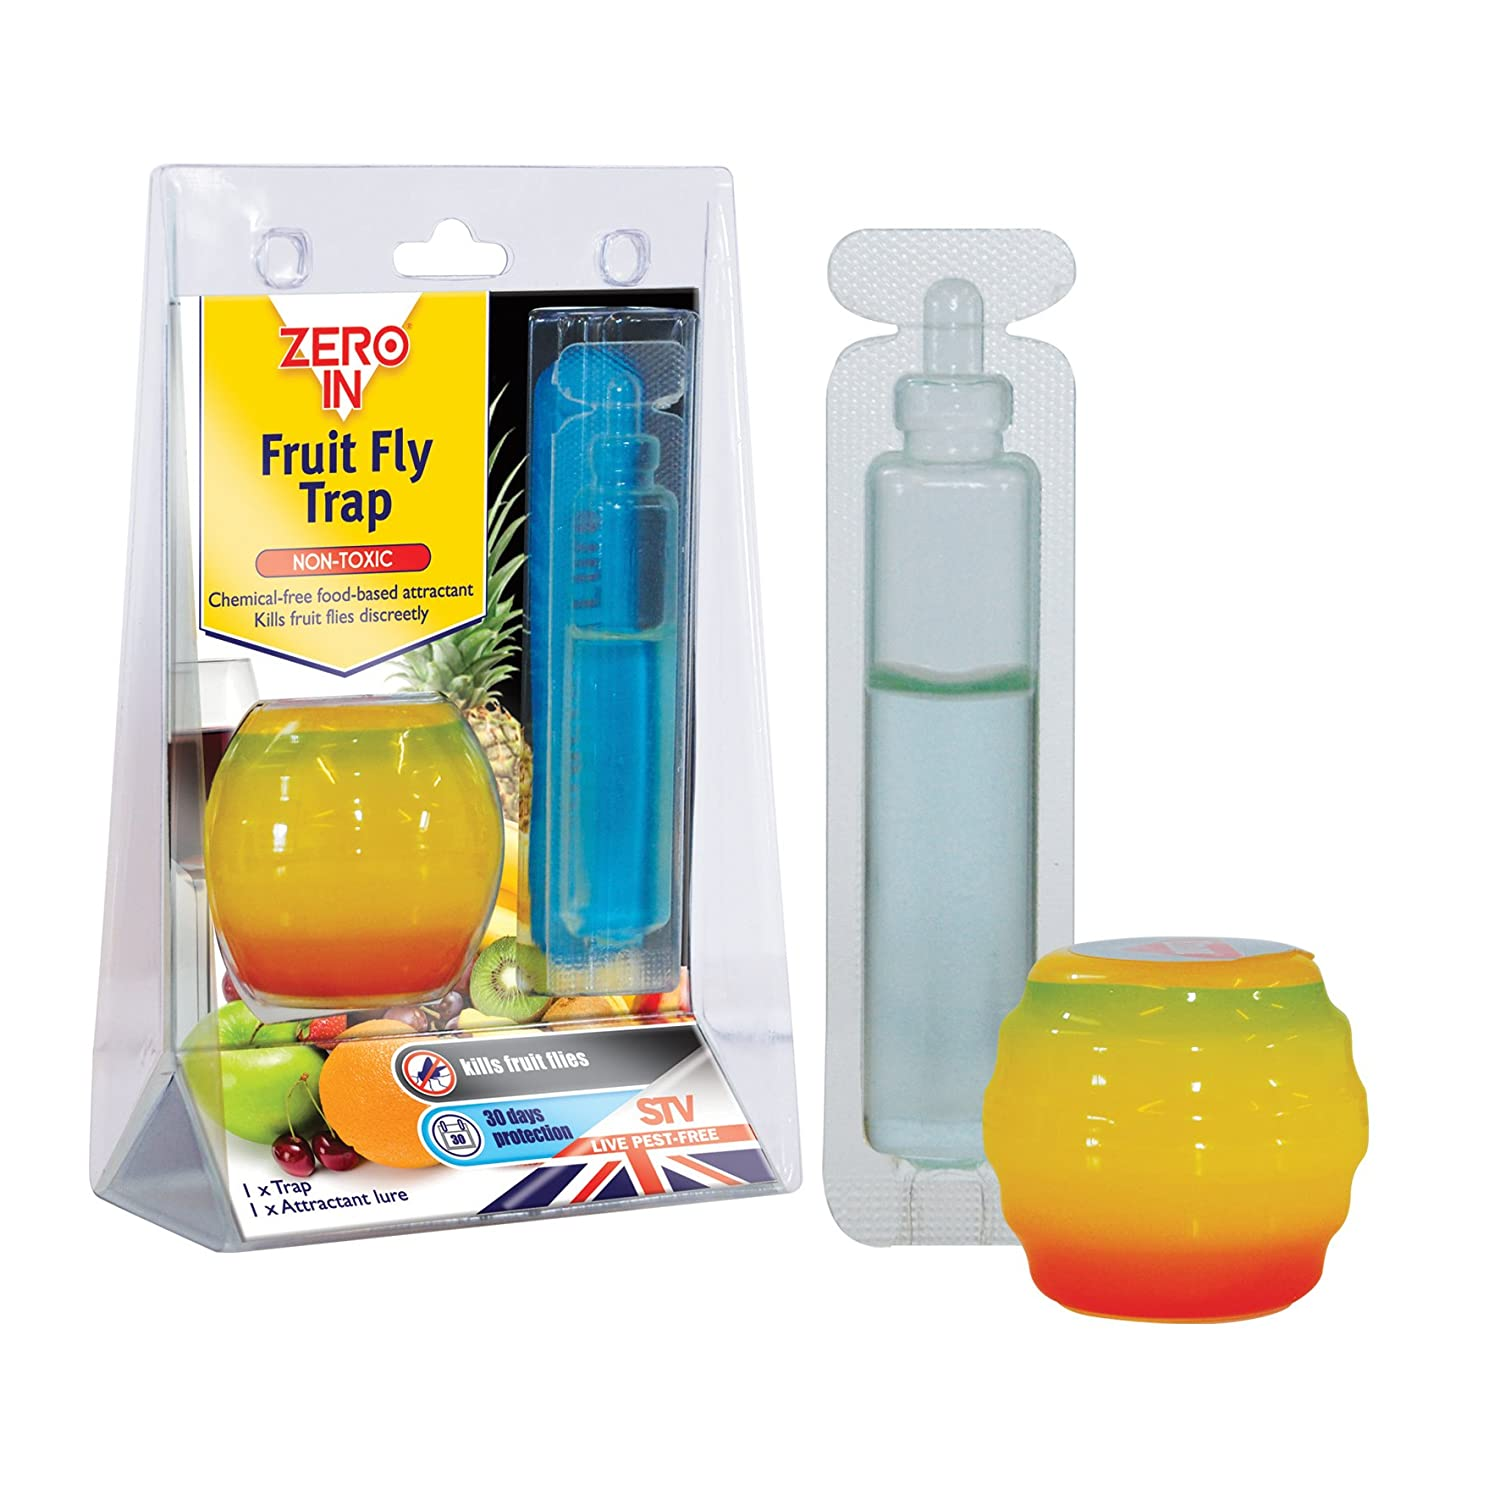 Zero In Fruit Fly Trap (Apple-Shaped, Non-Toxic, Insect Trap to ...